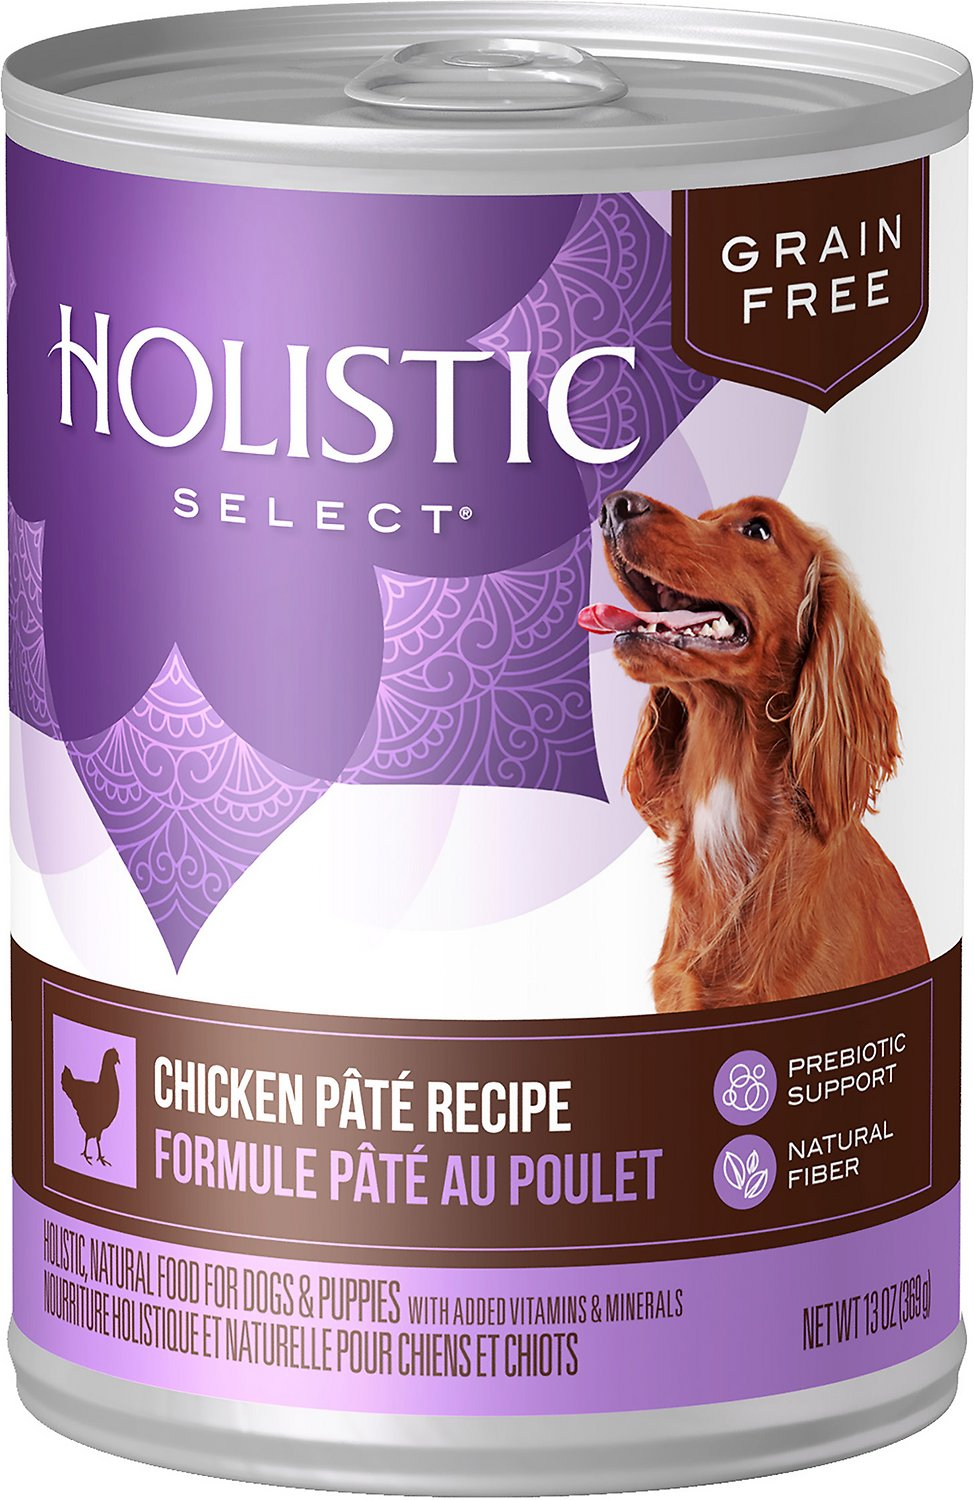 Holistic Select Chicken Pate Recipe Grain-Free Canned Dog Food, 13-oz